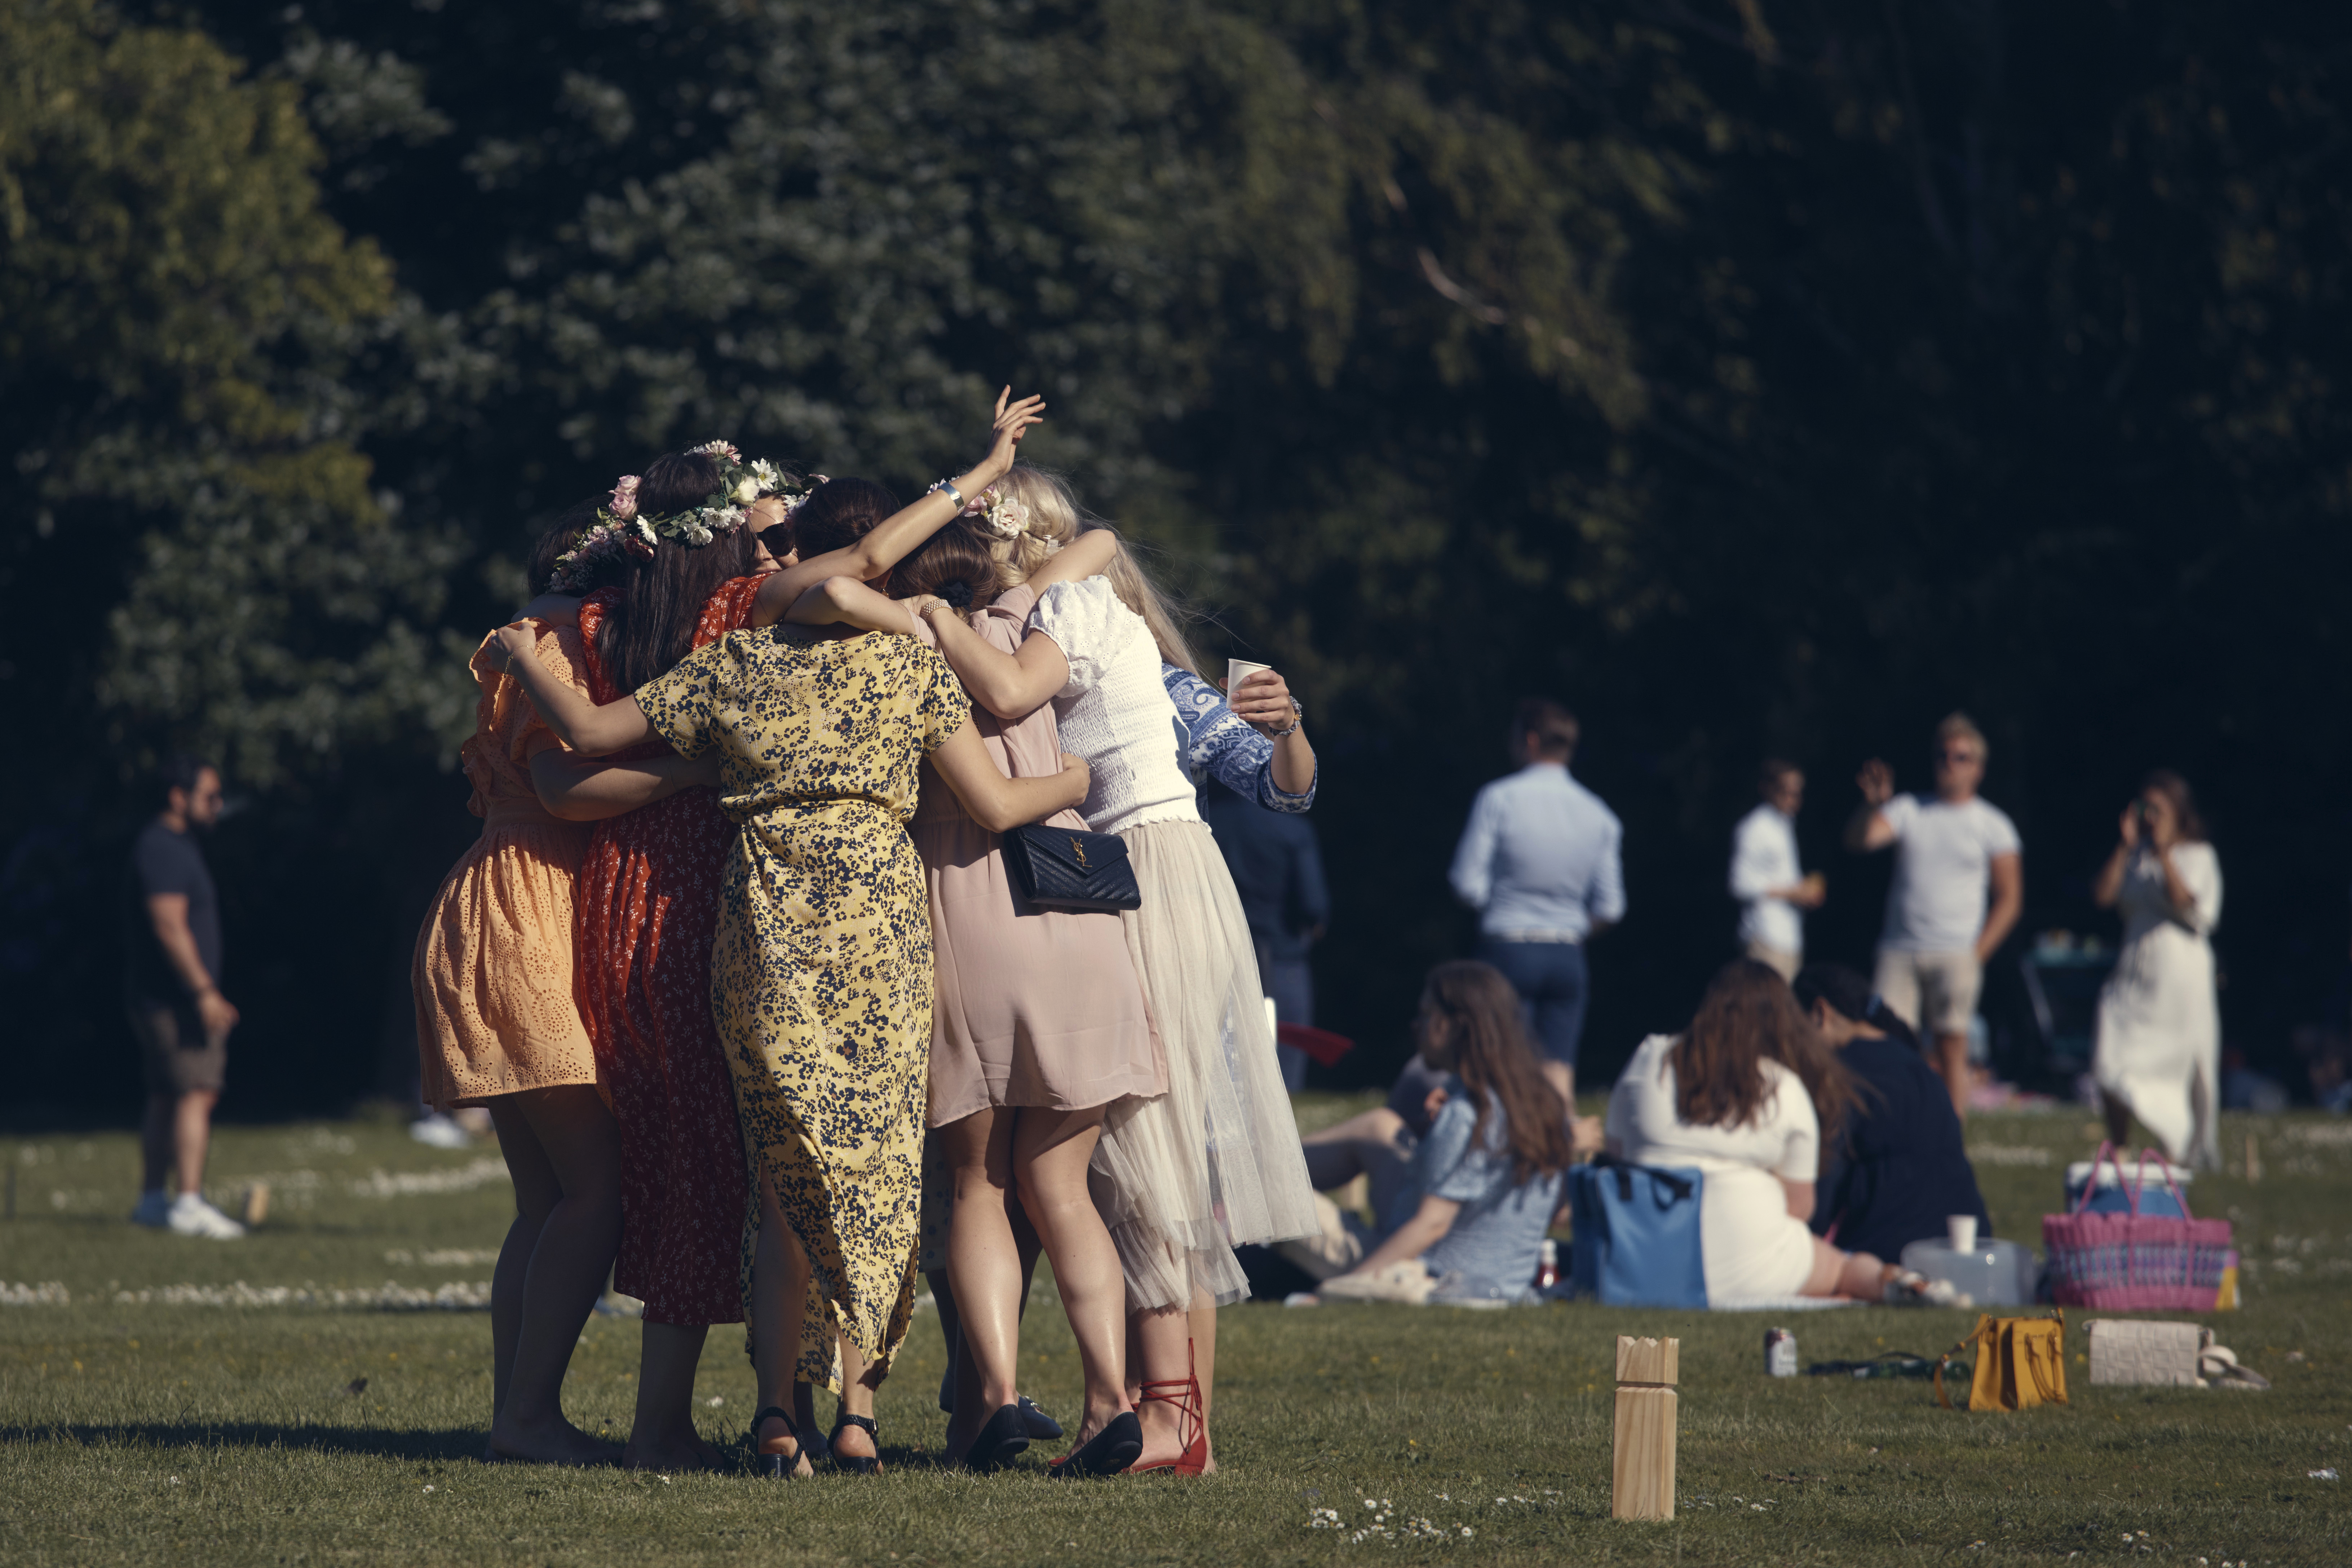 Girls celebrate as the play a game in a park during the annual Midsummer celebrations in Stockholm